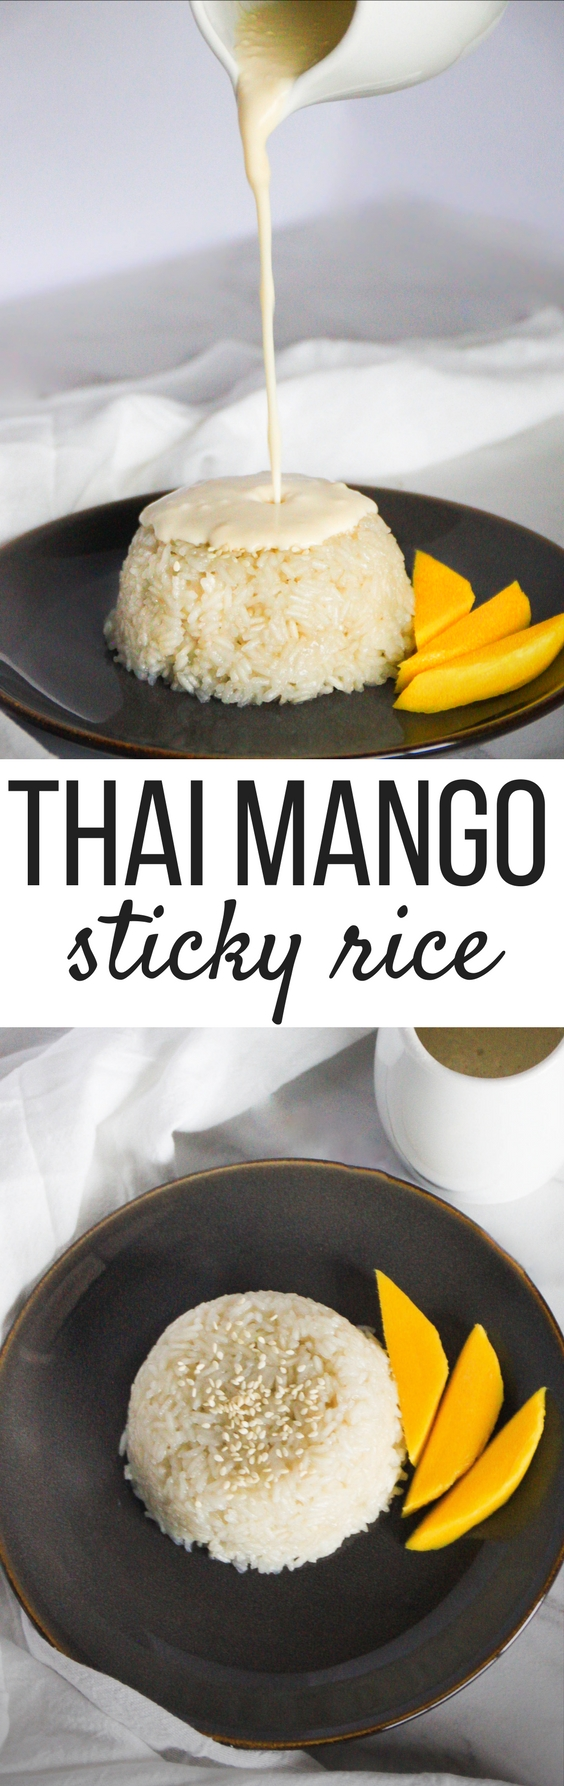 Thai Mango Sticky Rice only uses four ingredients and it's so easy to make! A simple, yet satisfying treat to whip up whenever you are feeling in the mood for something sweet and delectable.